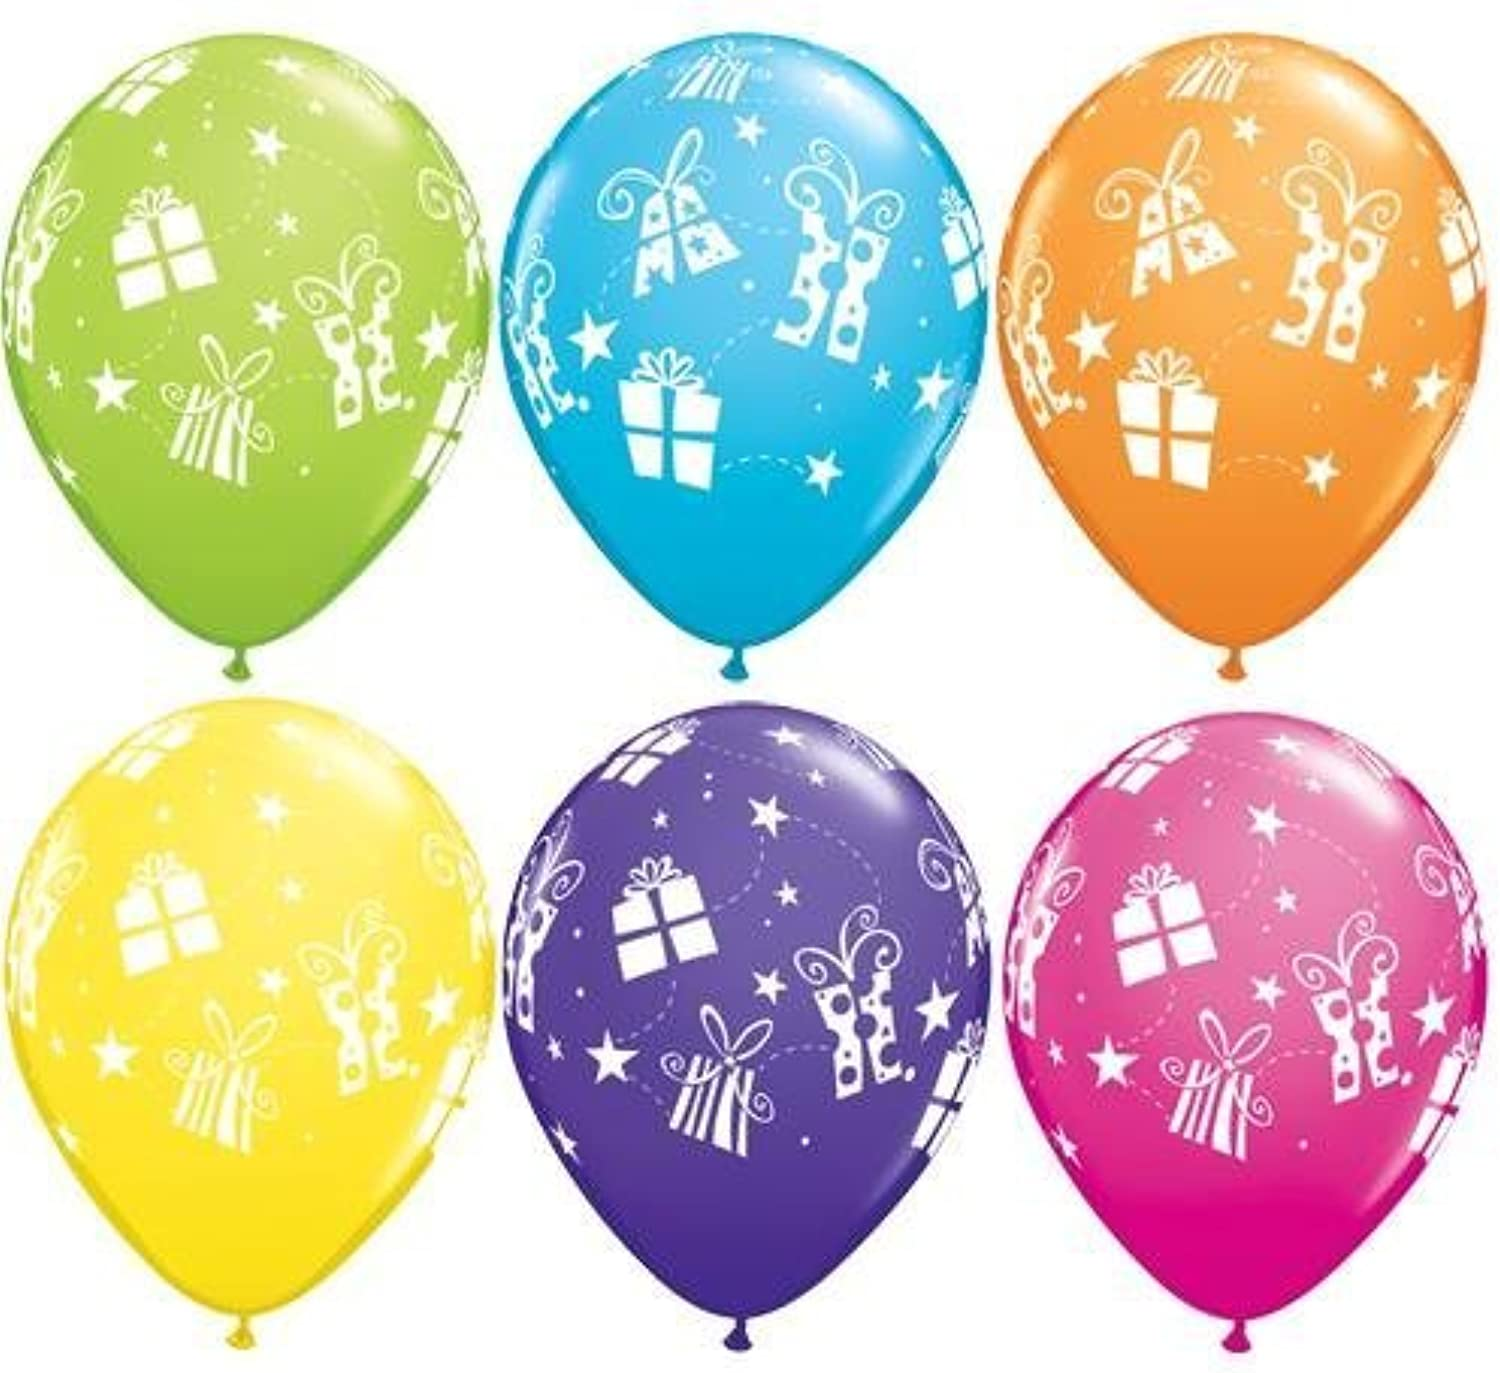 Christmas Presents & Stars Tropical Assorted 11 Inch Qualatex Latex Balloons x 5 by Qualatex